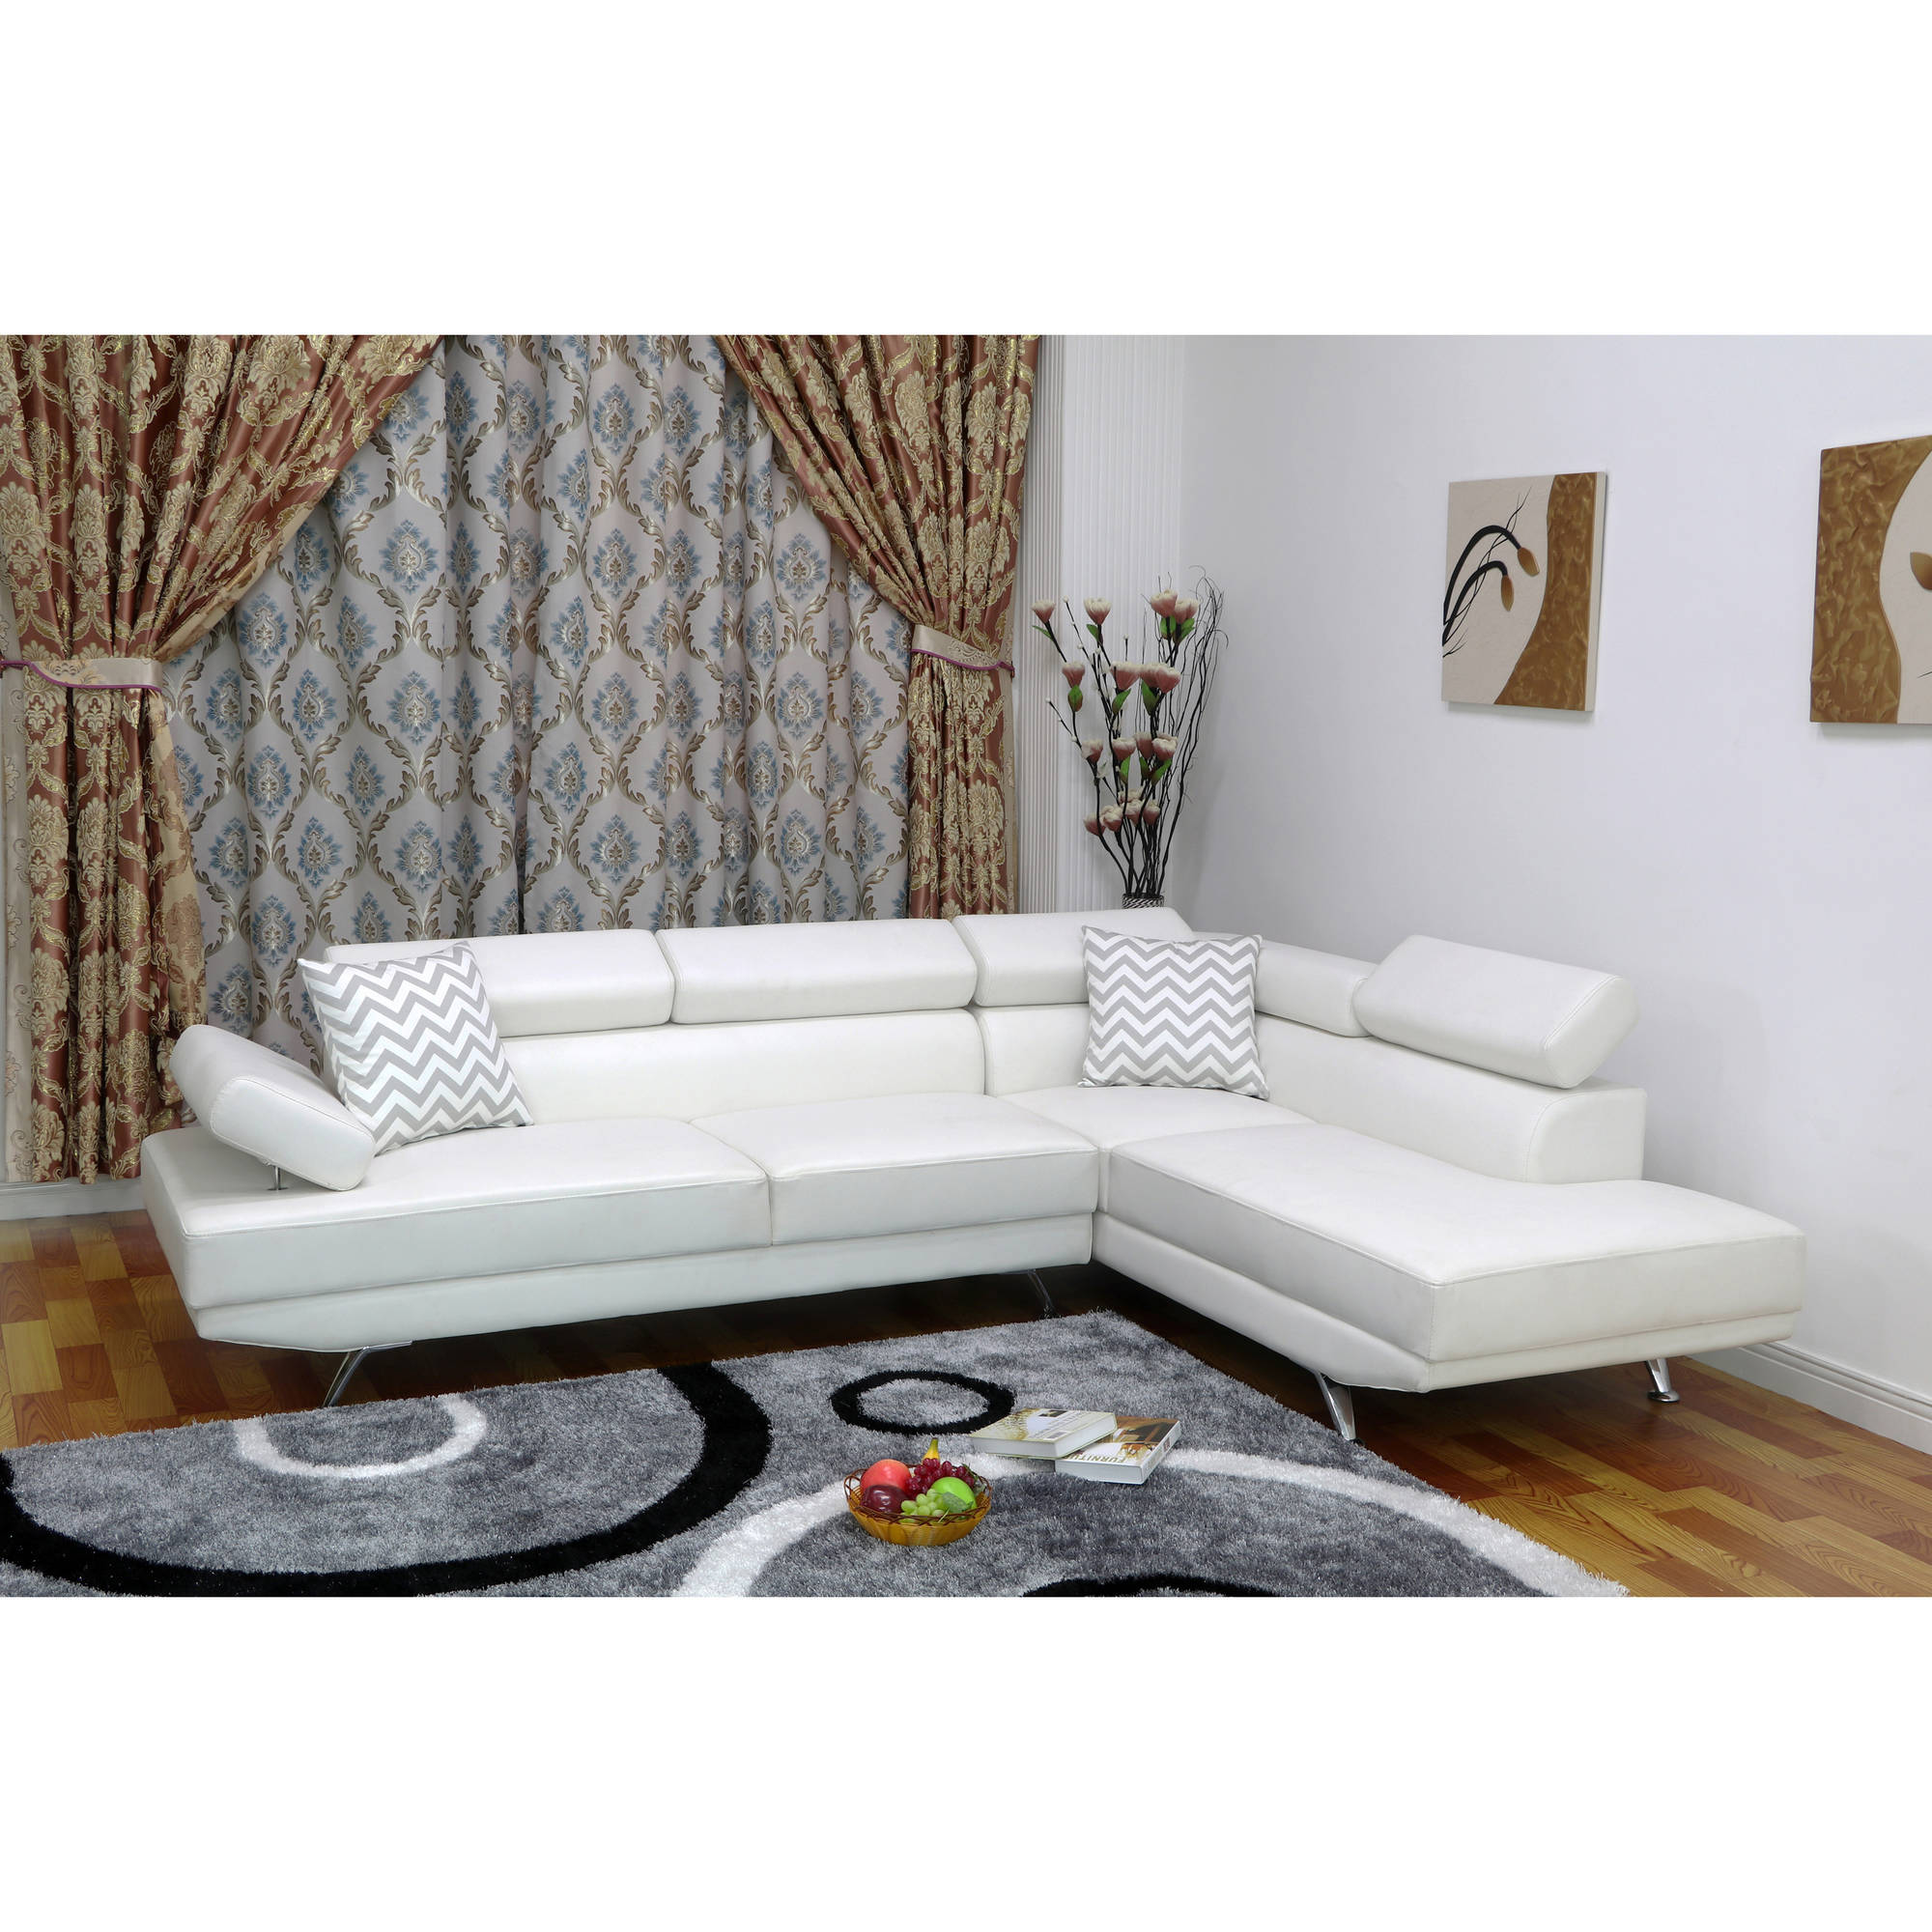 UFE Sofia 2 Piece Faux Leather Modern Right Facing Chaise